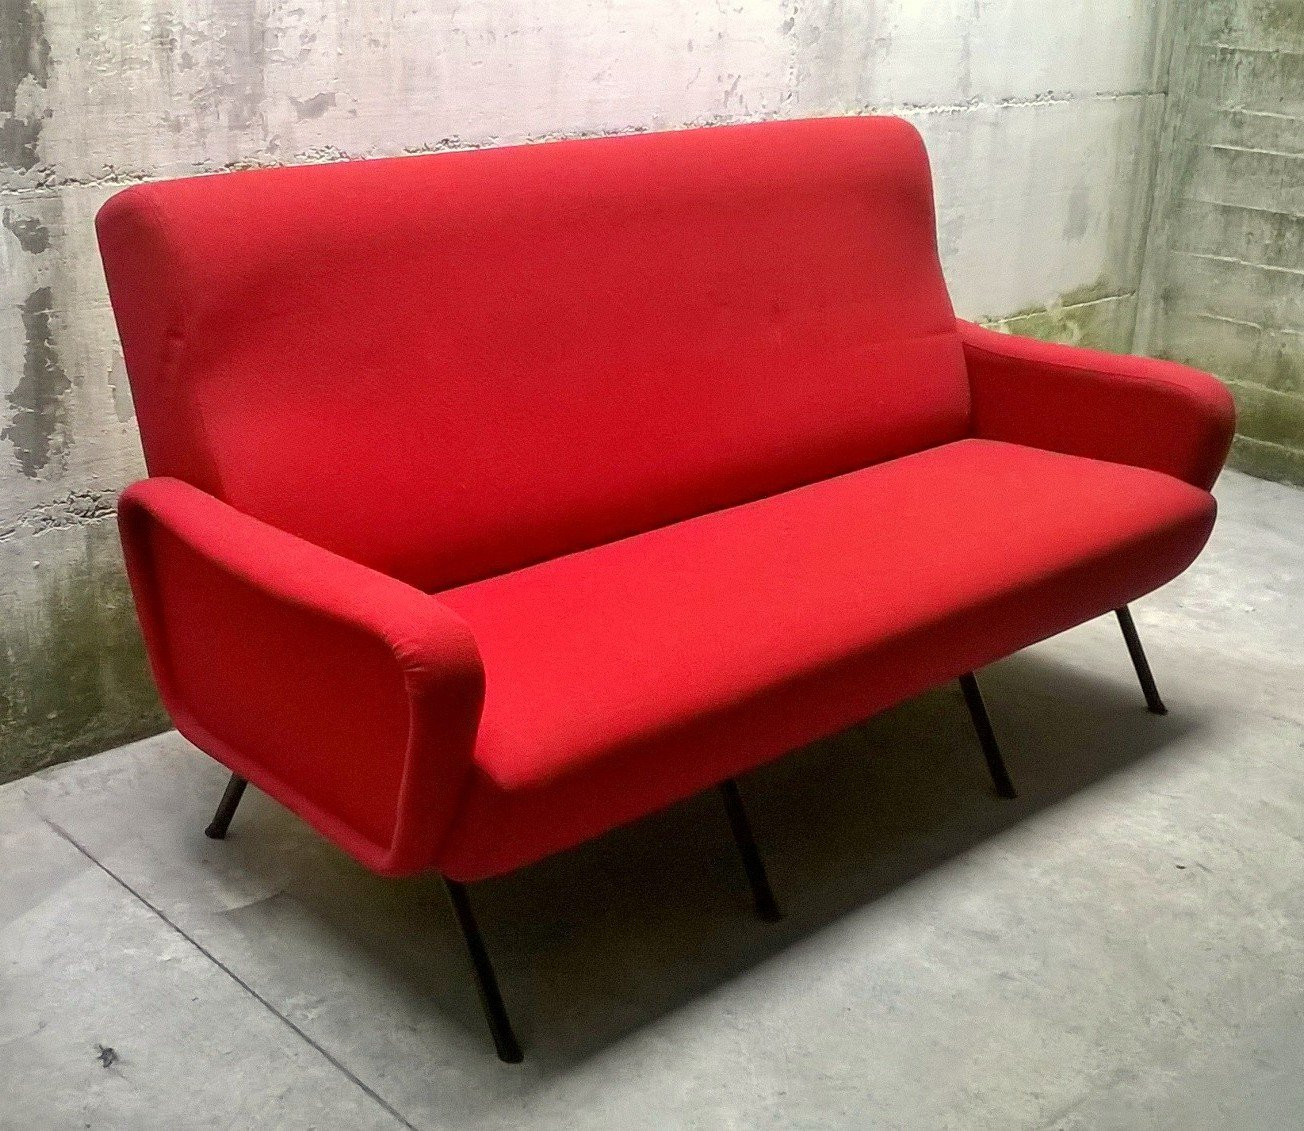 rotes italienisches sofa 1960er bei pamono kaufen. Black Bedroom Furniture Sets. Home Design Ideas